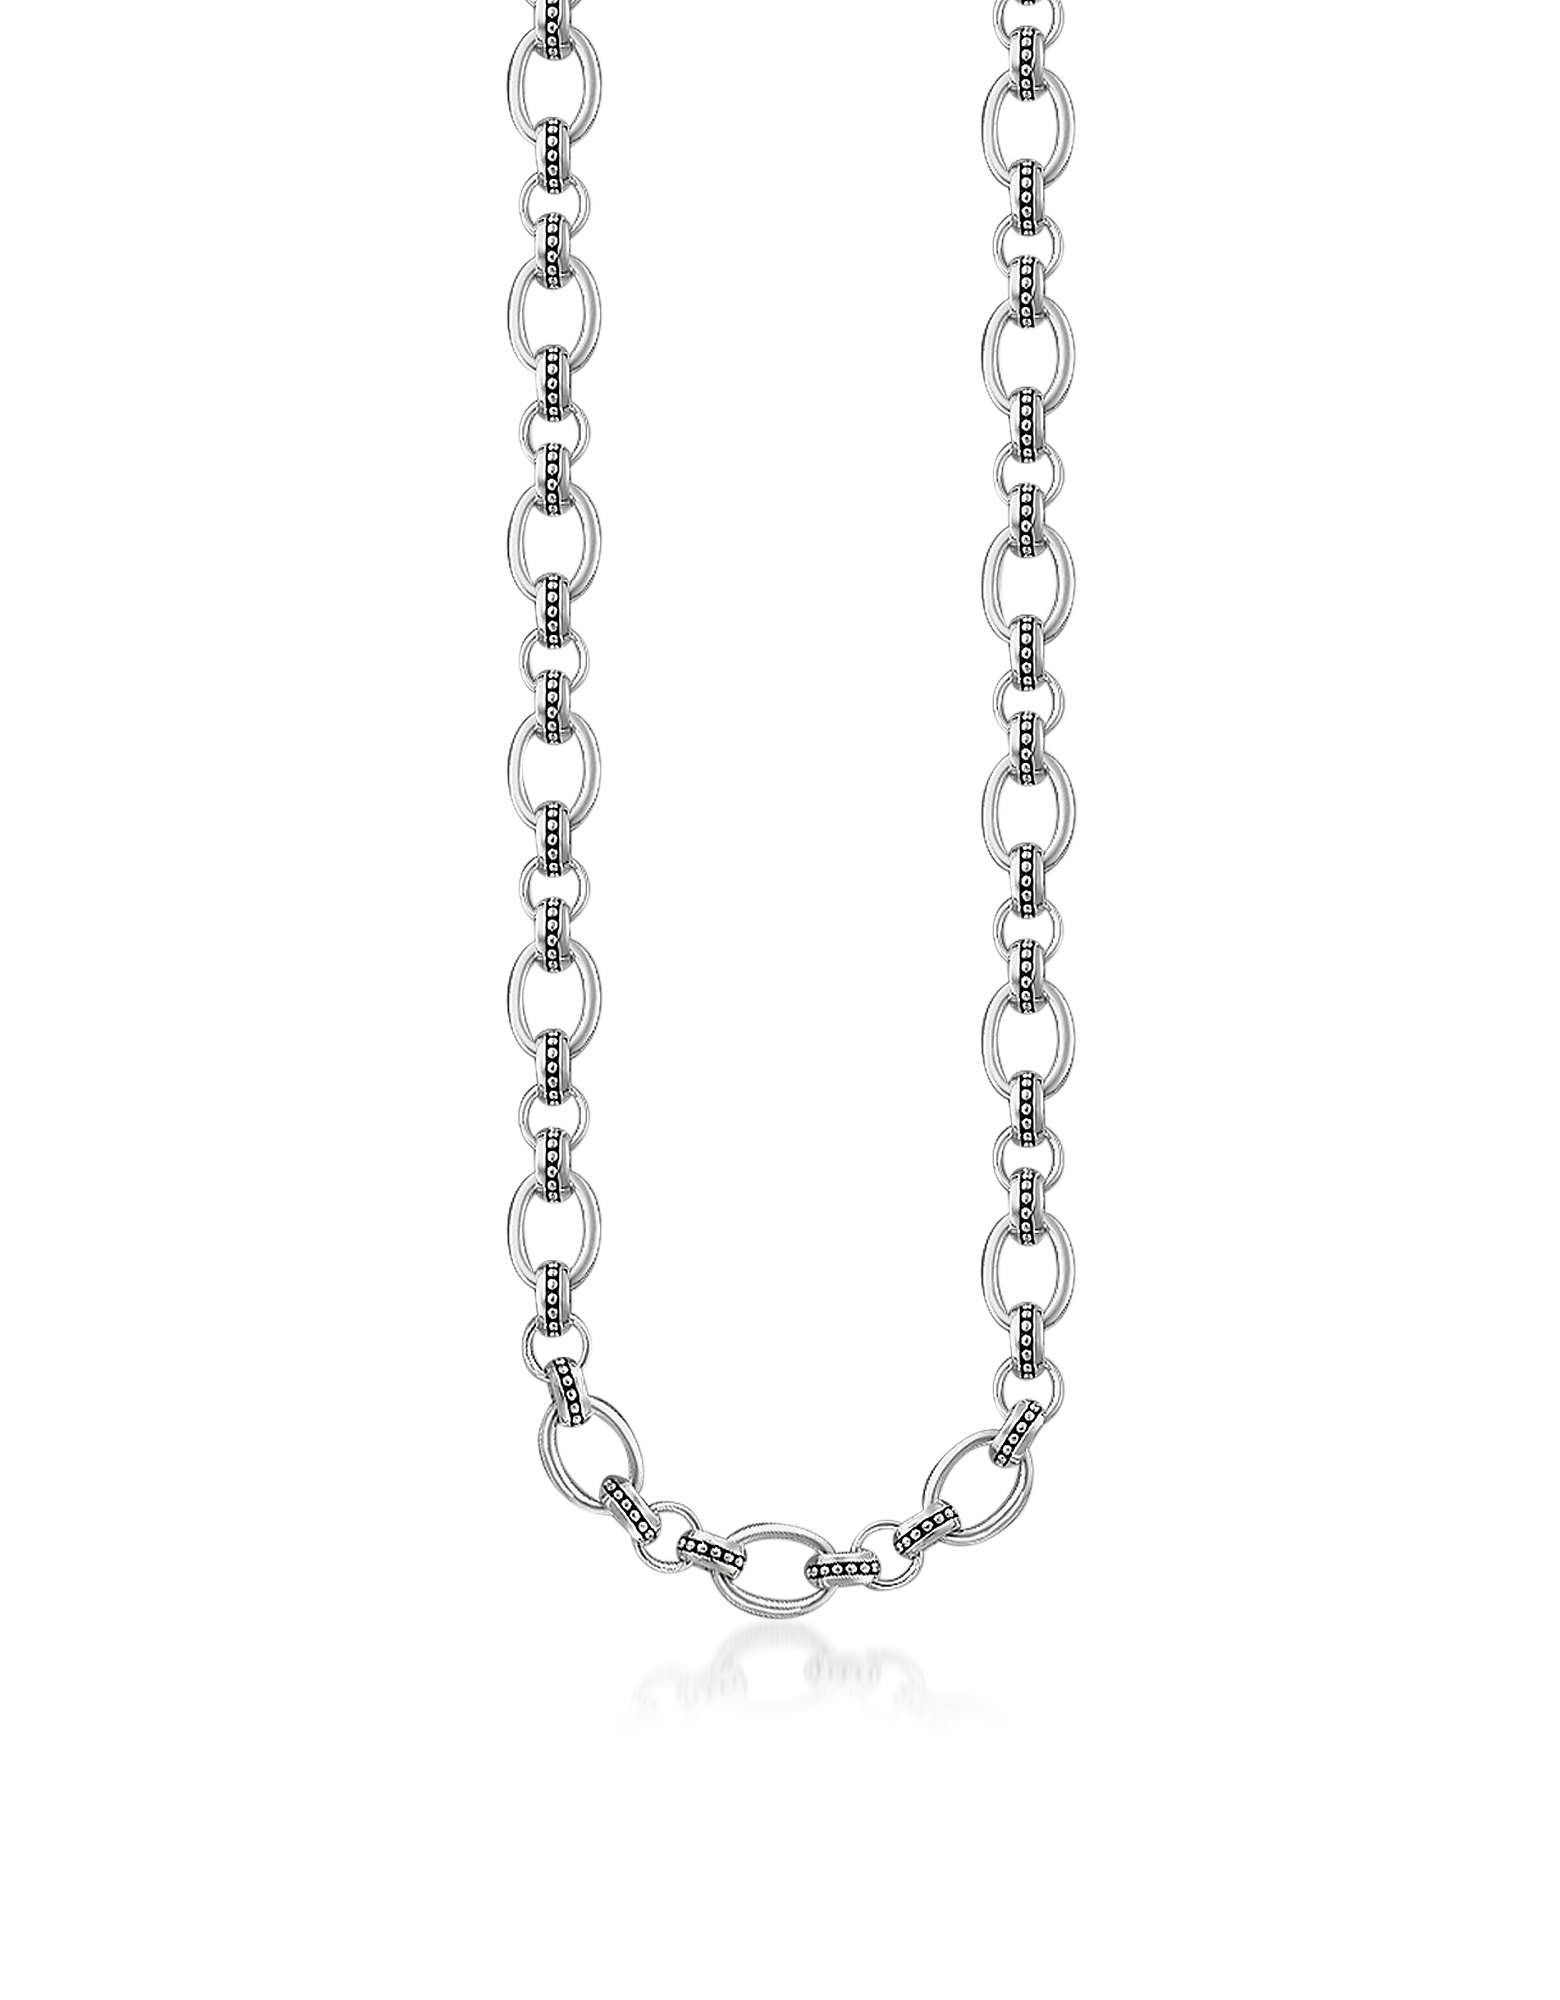 Thomas Sabo Men's Necklaces, Blackened Sterling Silver Rivet Look Necklace